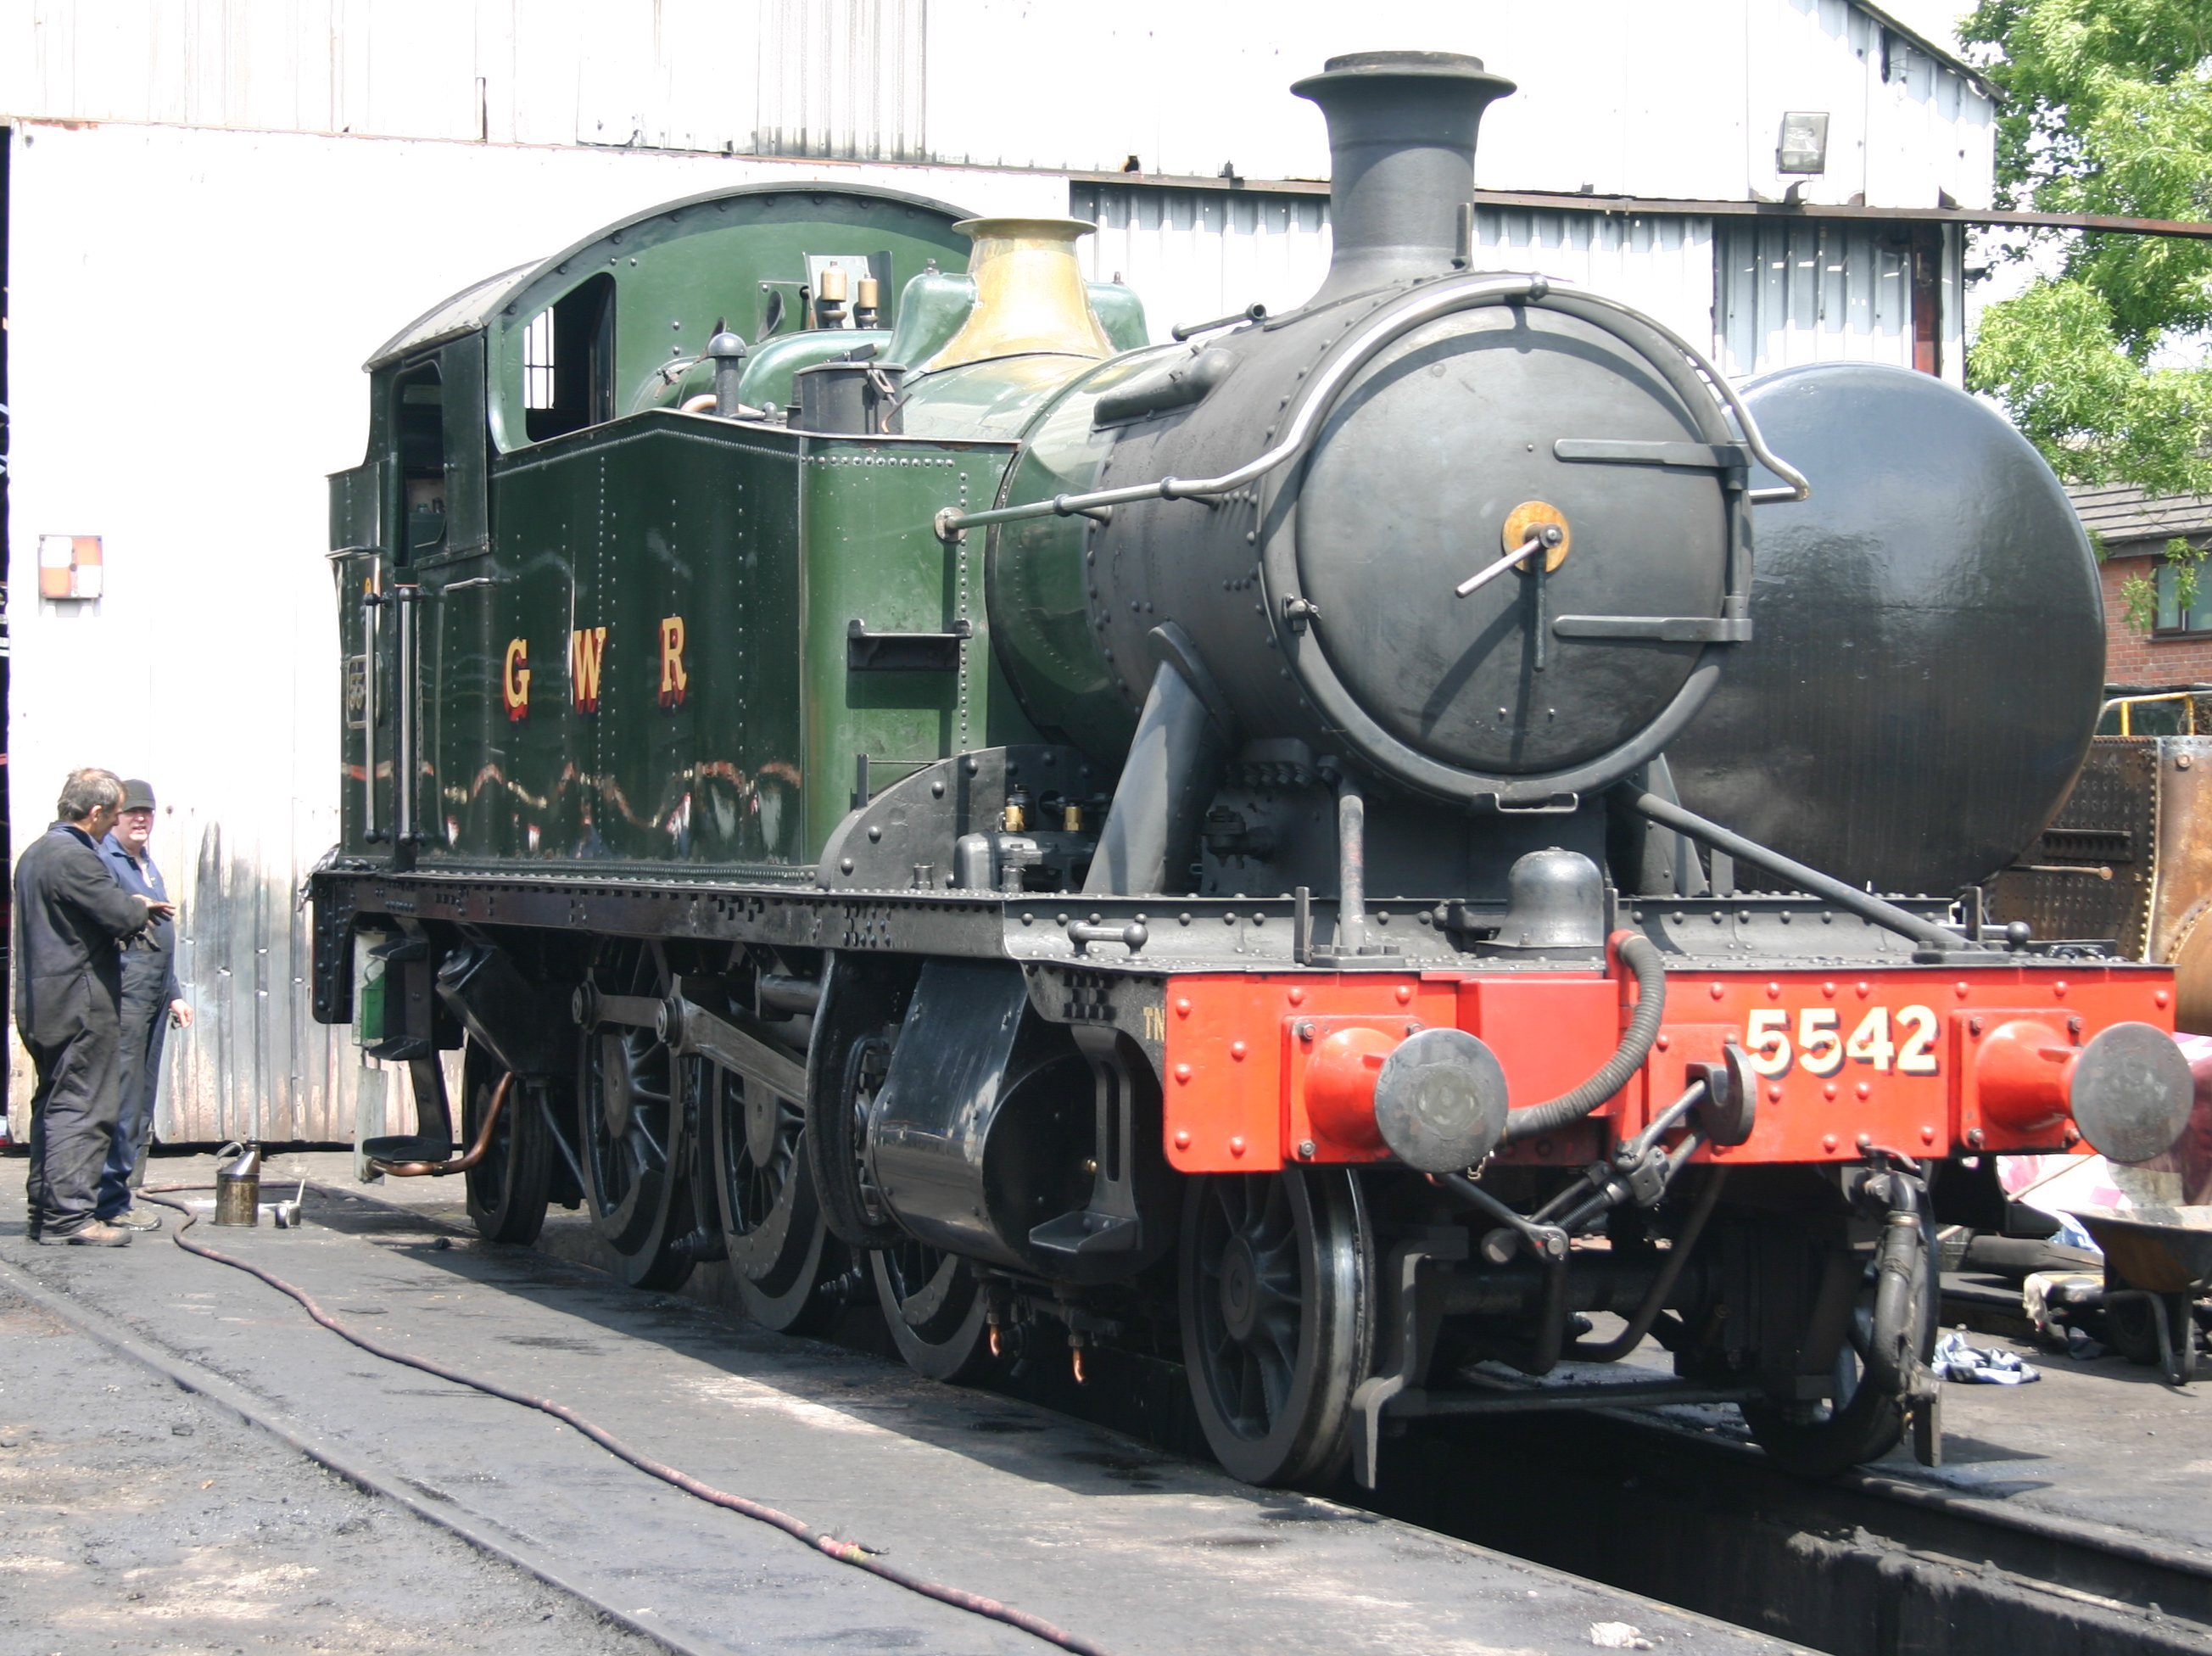 Gwr 4953 Pitchford Hall And 4575 Prairie Tank 5542 At